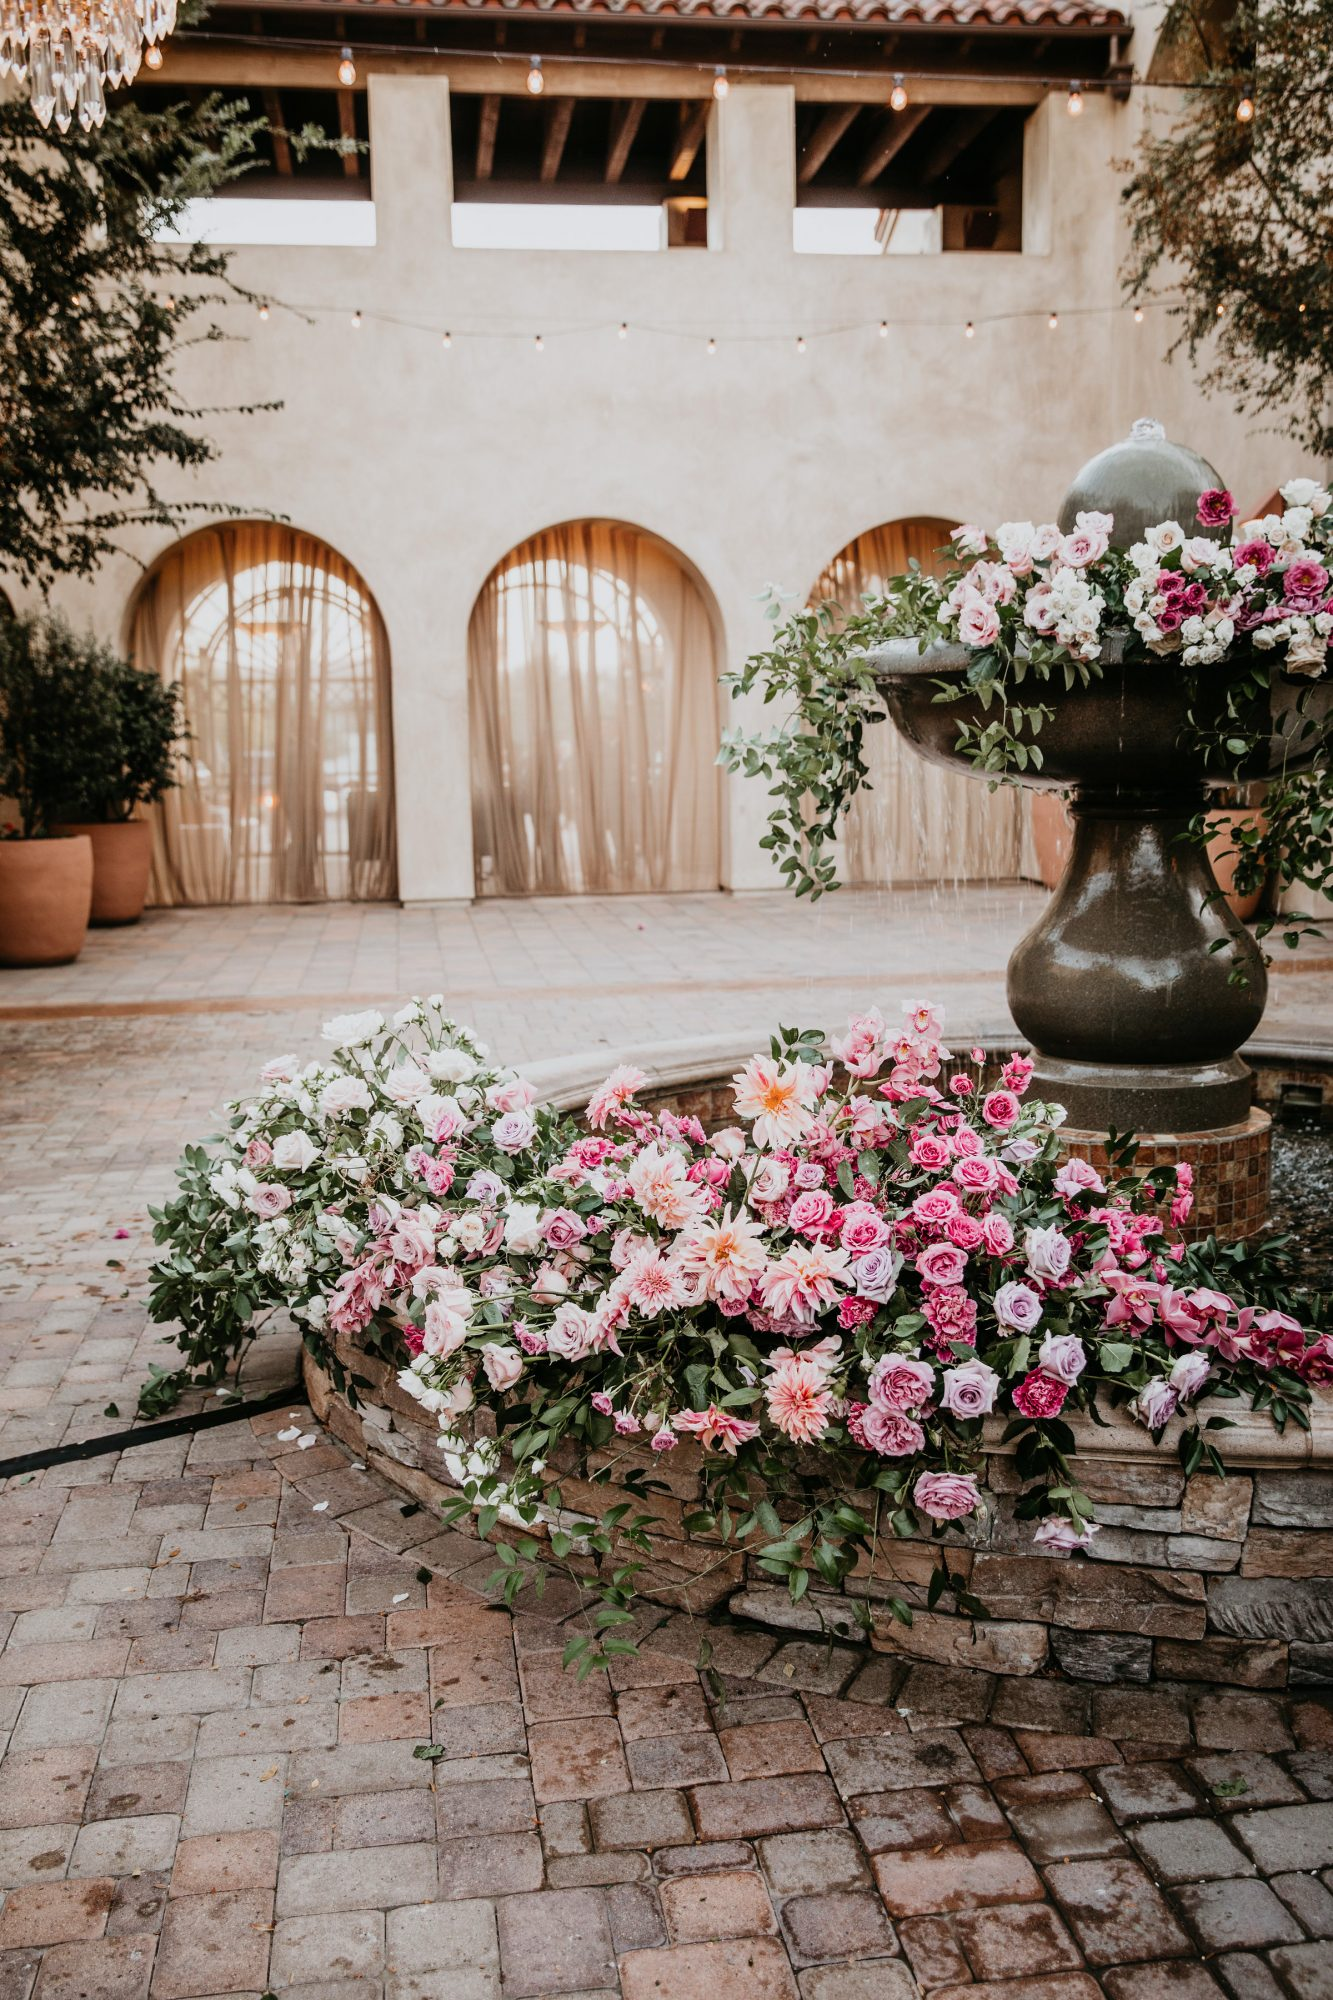 floral fountain with pink and white flowers